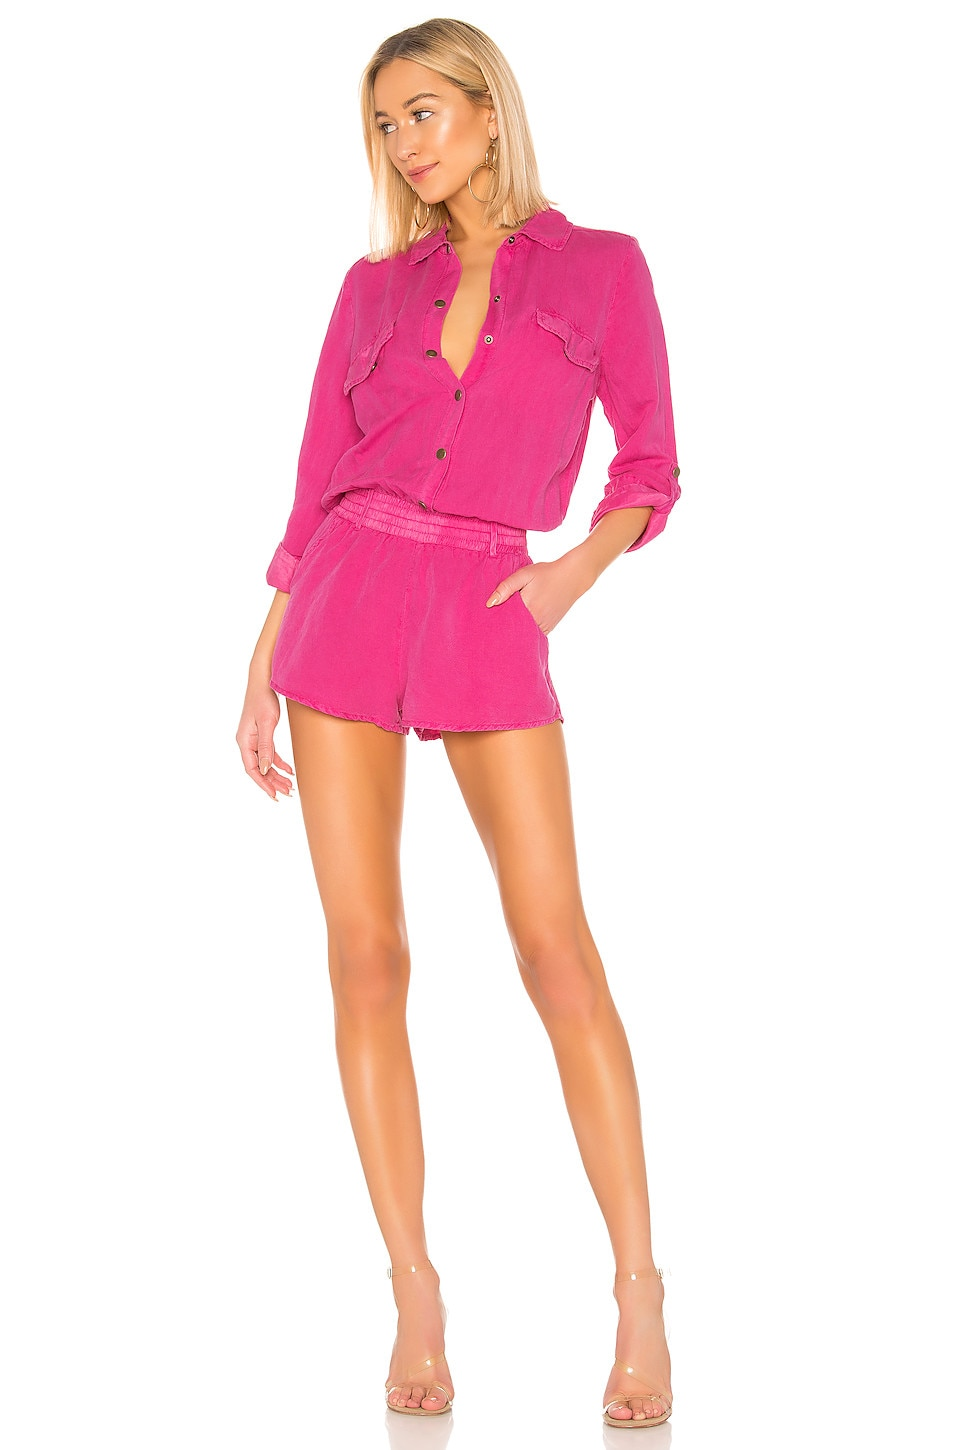 YFB CLOTHING X REVOLVE Noah Romper in Hot Pink